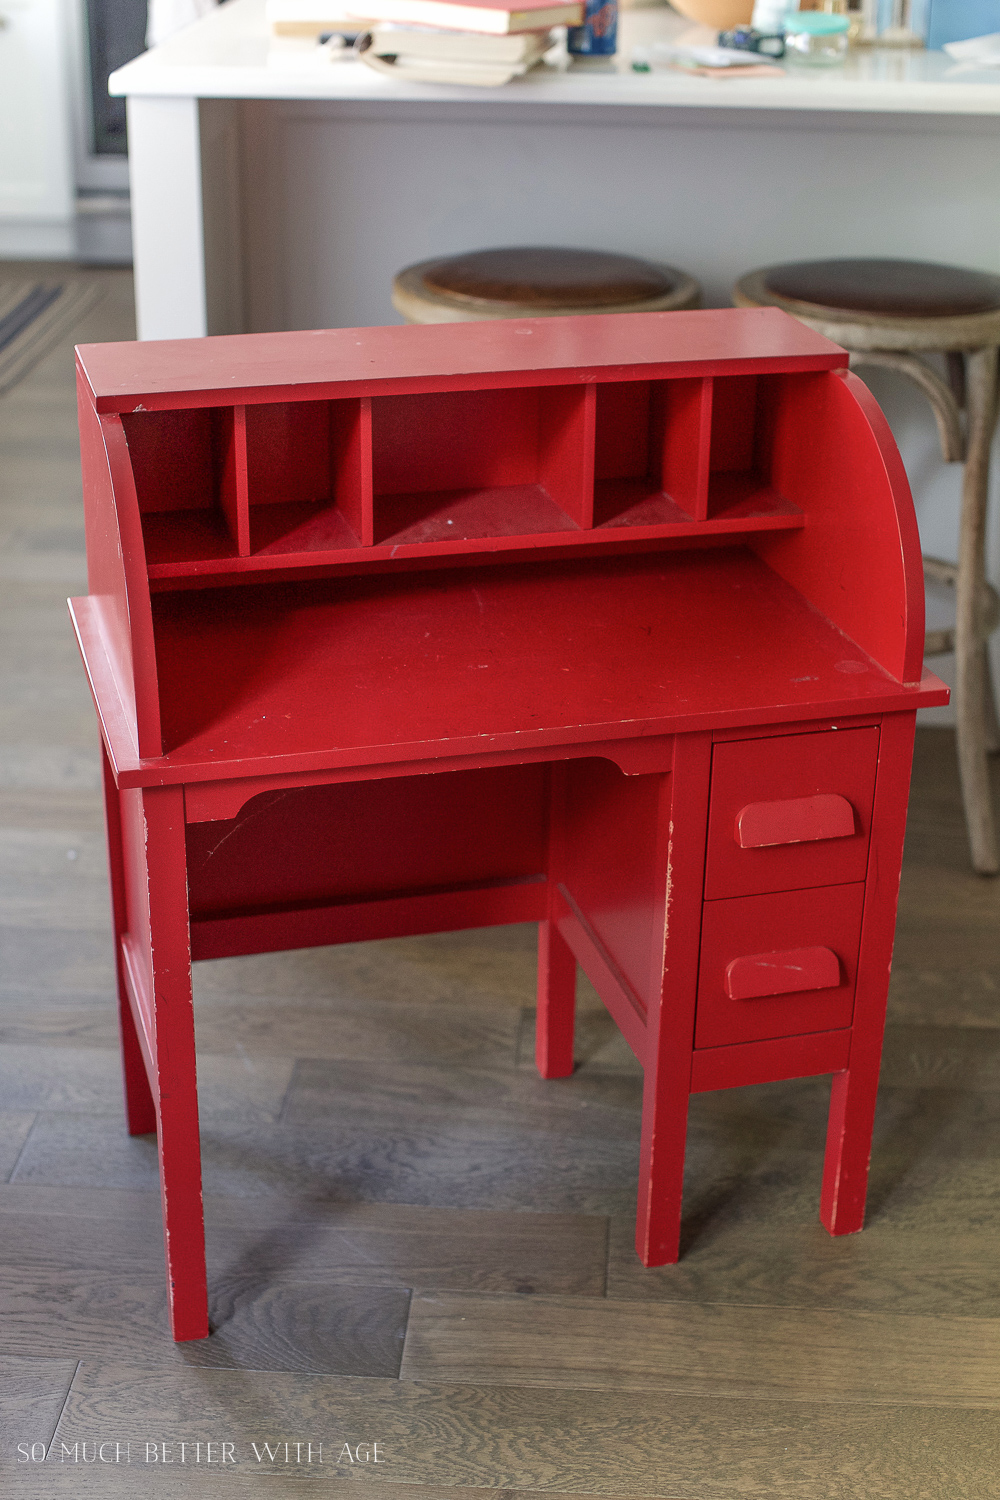 Colored Furniture how to paint over bright or dark coloured furniture-vintage kid's